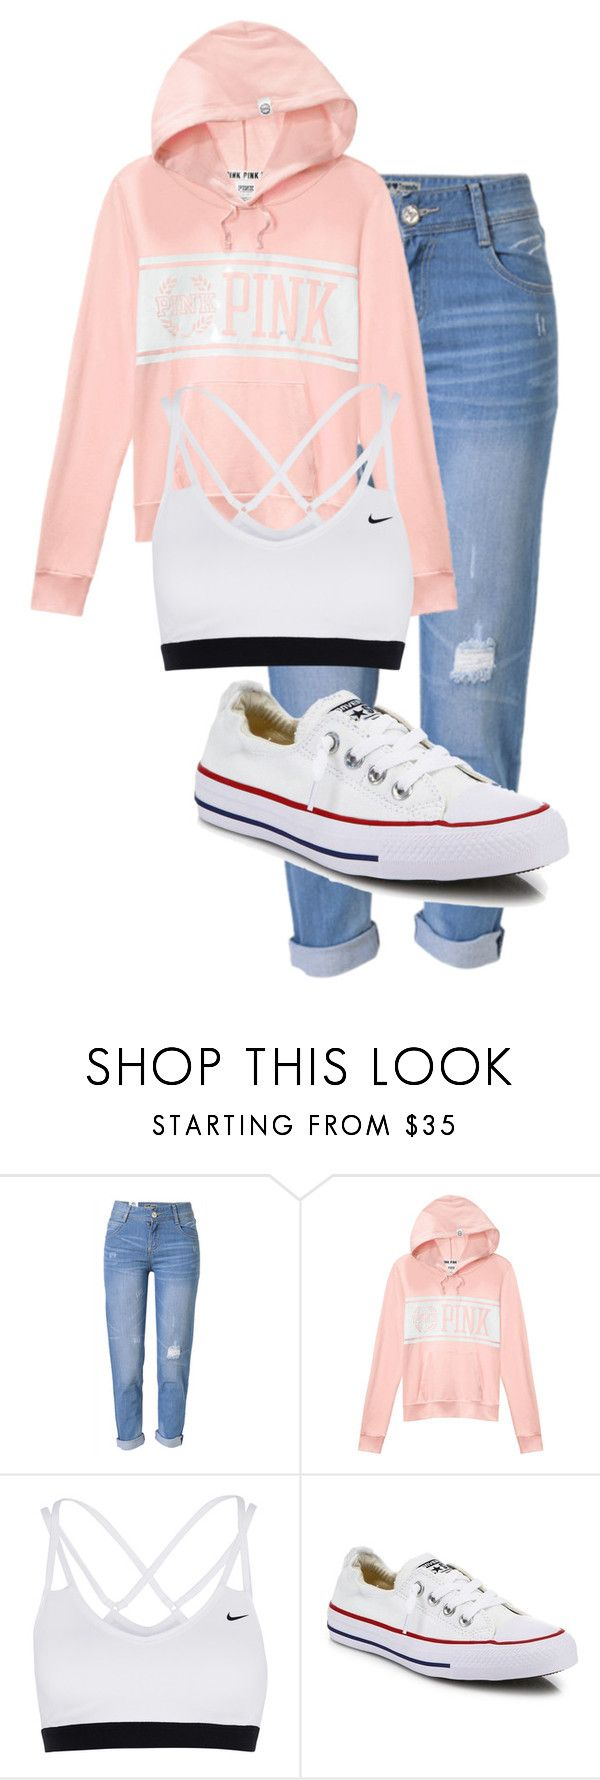 """""""School Outfit"""" by chloefaust on Polyvore featuring WithChic, Victoria's Secret, NIKE and Converse"""